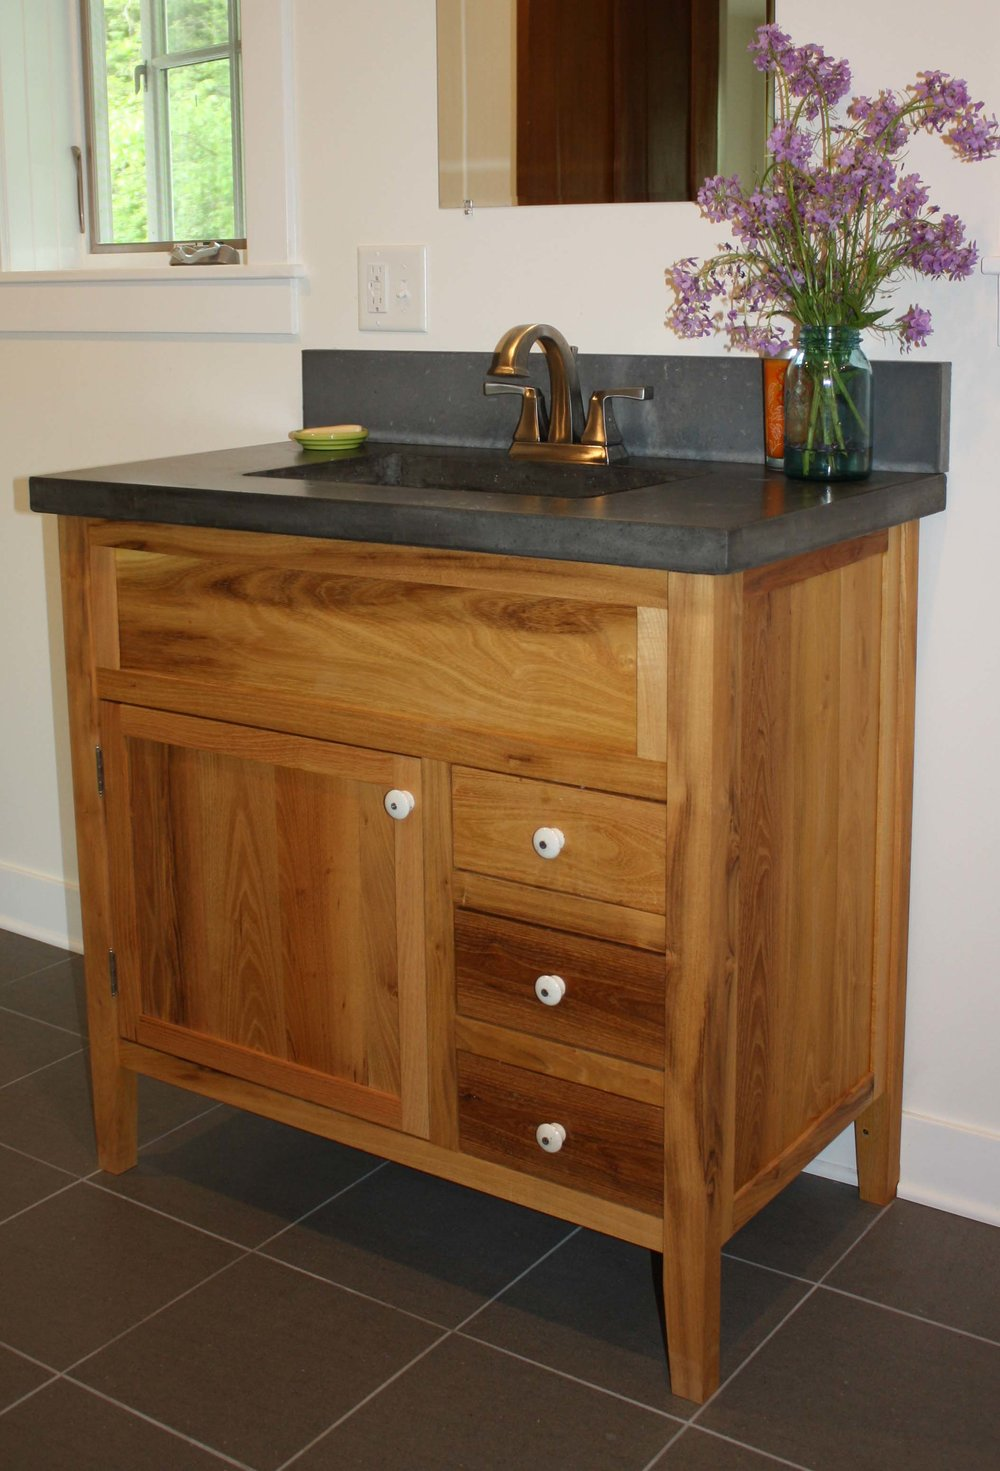 BATH VANITY - The design was influenced by 'Hoosier Cabinets' common in kitchen of the early 20th century. Solid black locust wood and an oil finish adds a warmth to the space.